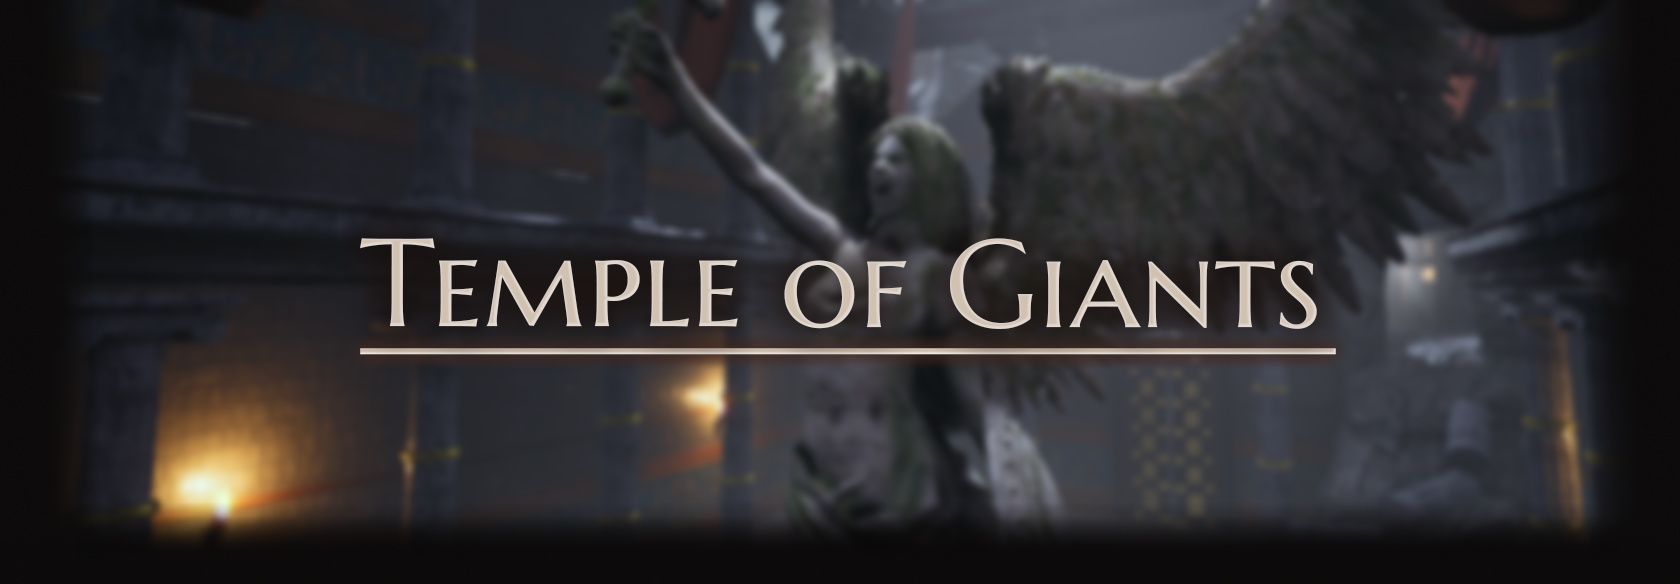 Temple of Giants